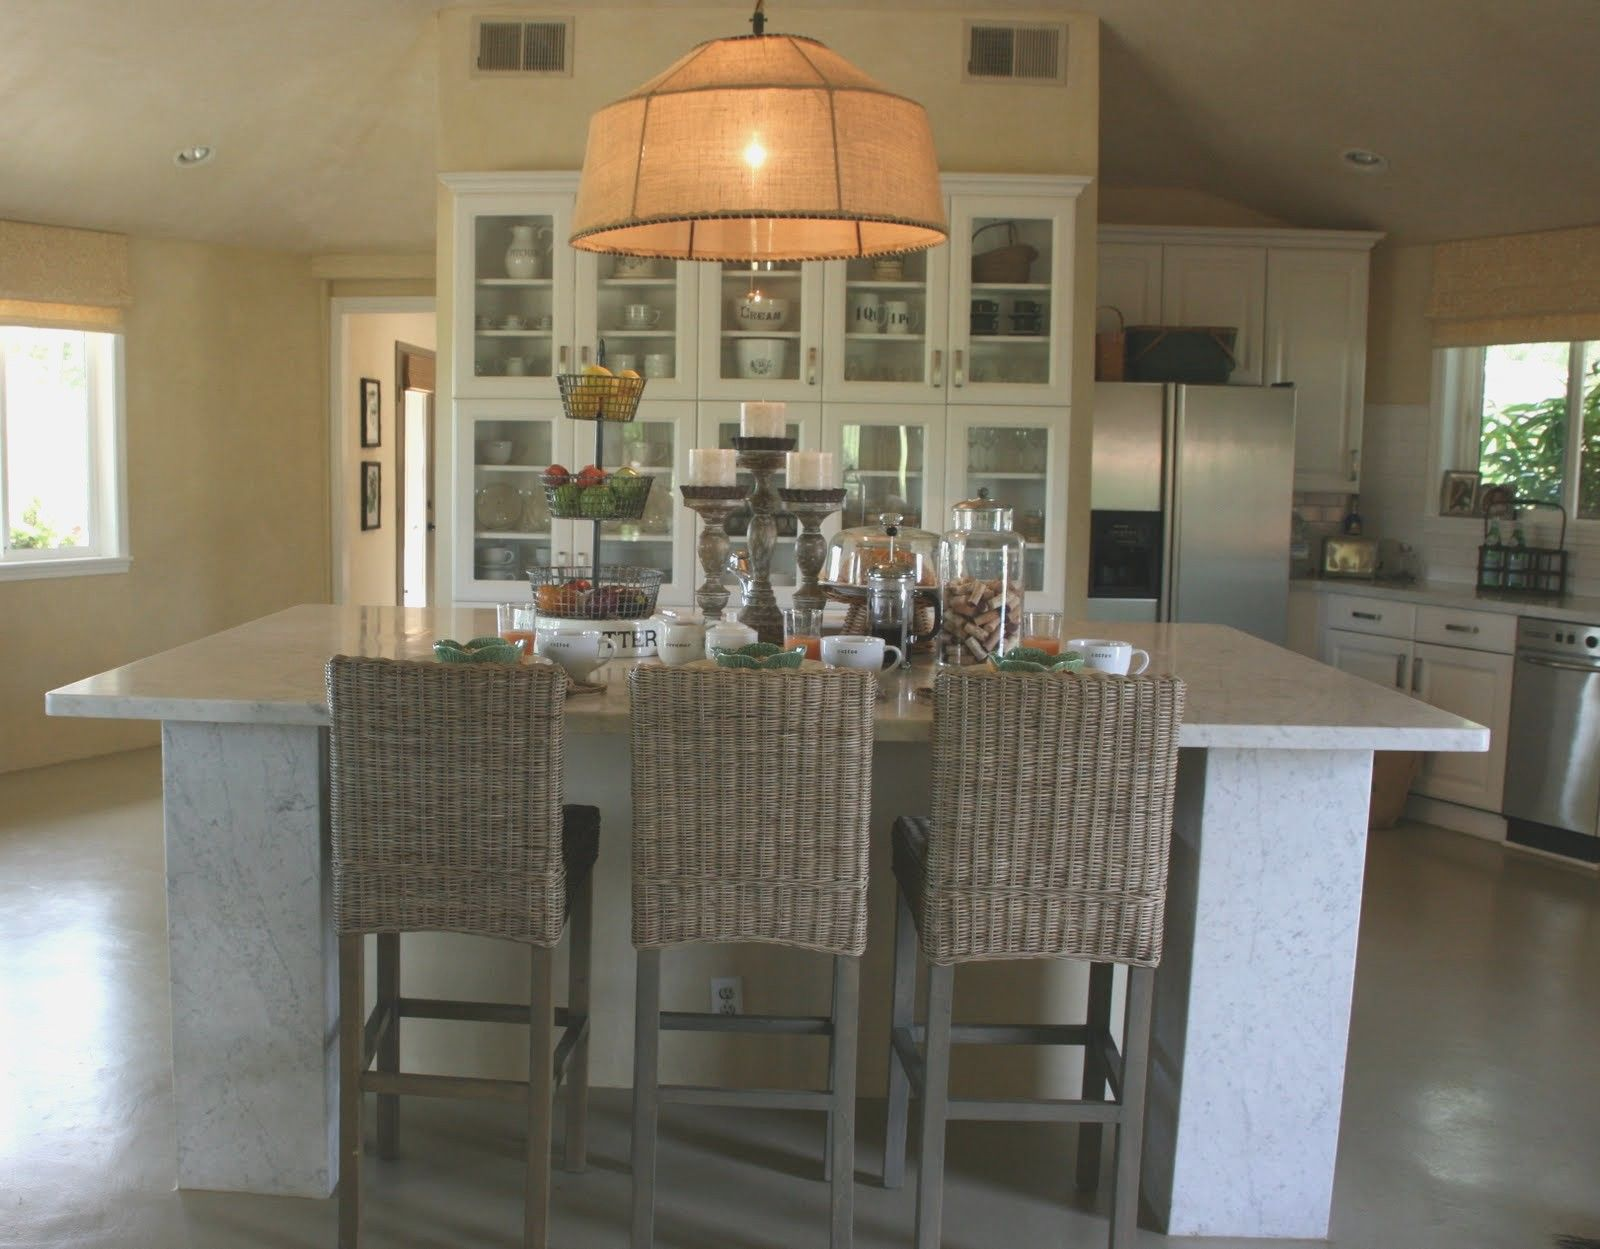 Kitchen Island Chairs With Backs   Kitchen Island Bar Stools With Backs, Kitchen  Island Chairs With Backs, Kitchen Island Chairs With Backs Uk, ...